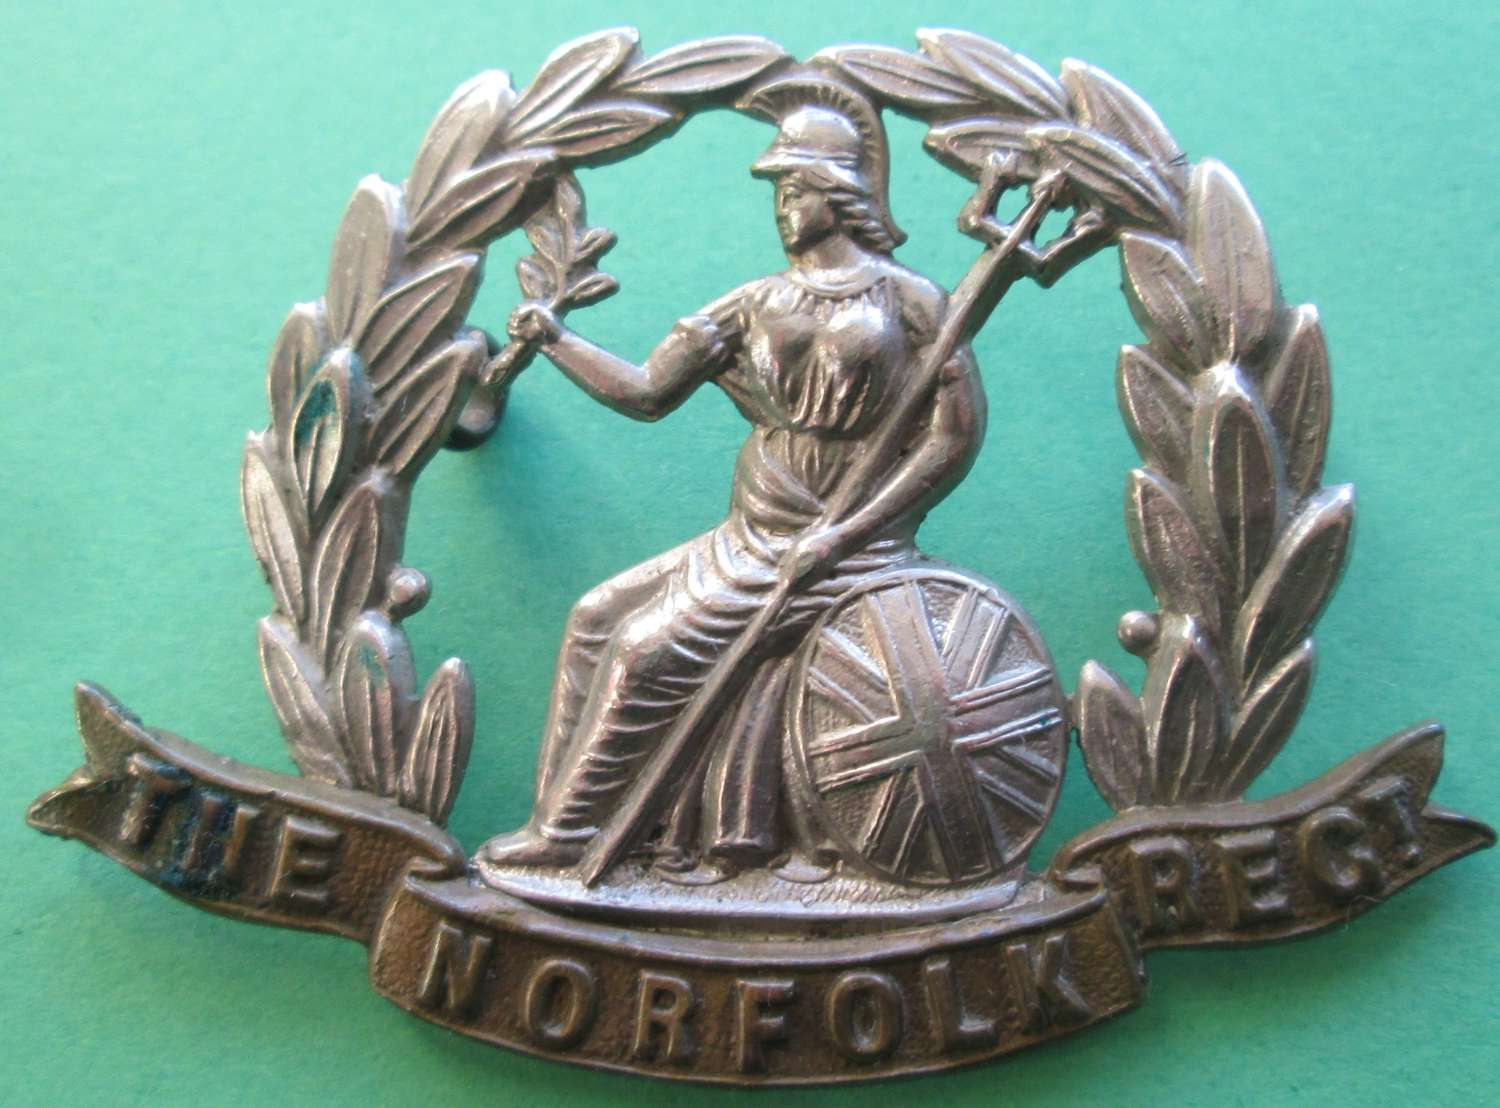 A VICTORIAN / EDWARDIAN PERIOD NORFOLK REGIMENT CAP BADGE